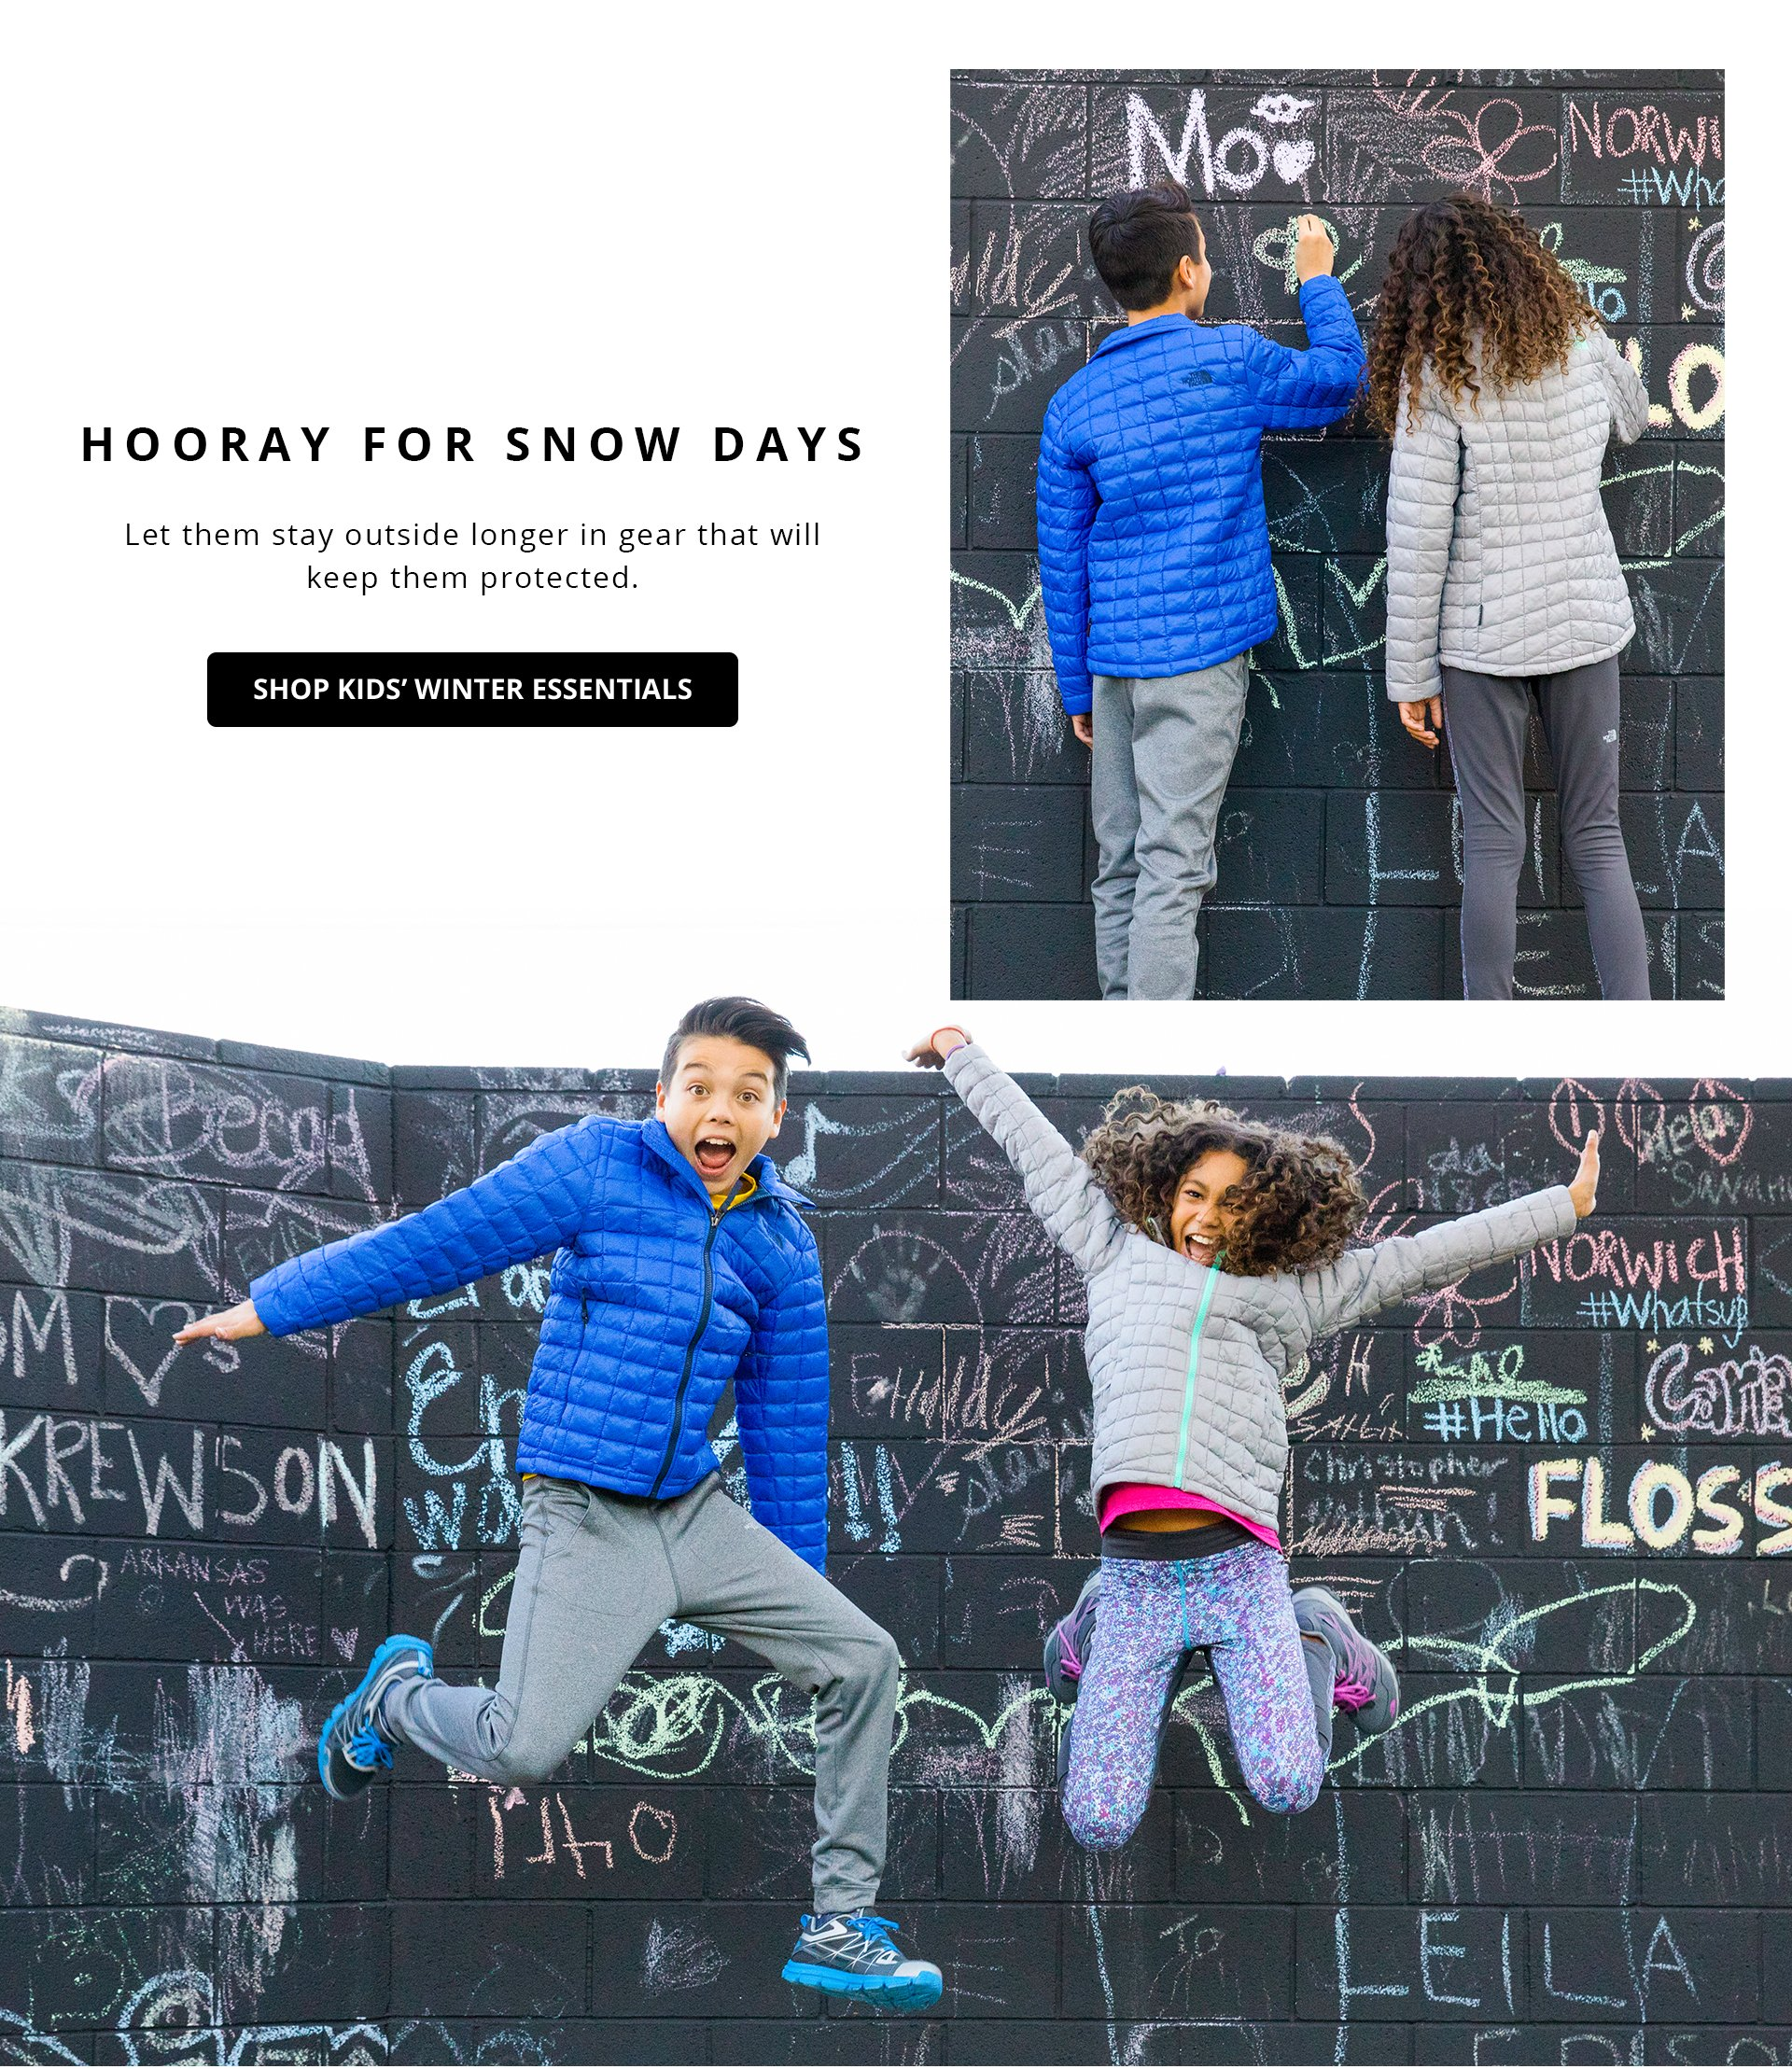 Shop Kids Winter Essentials